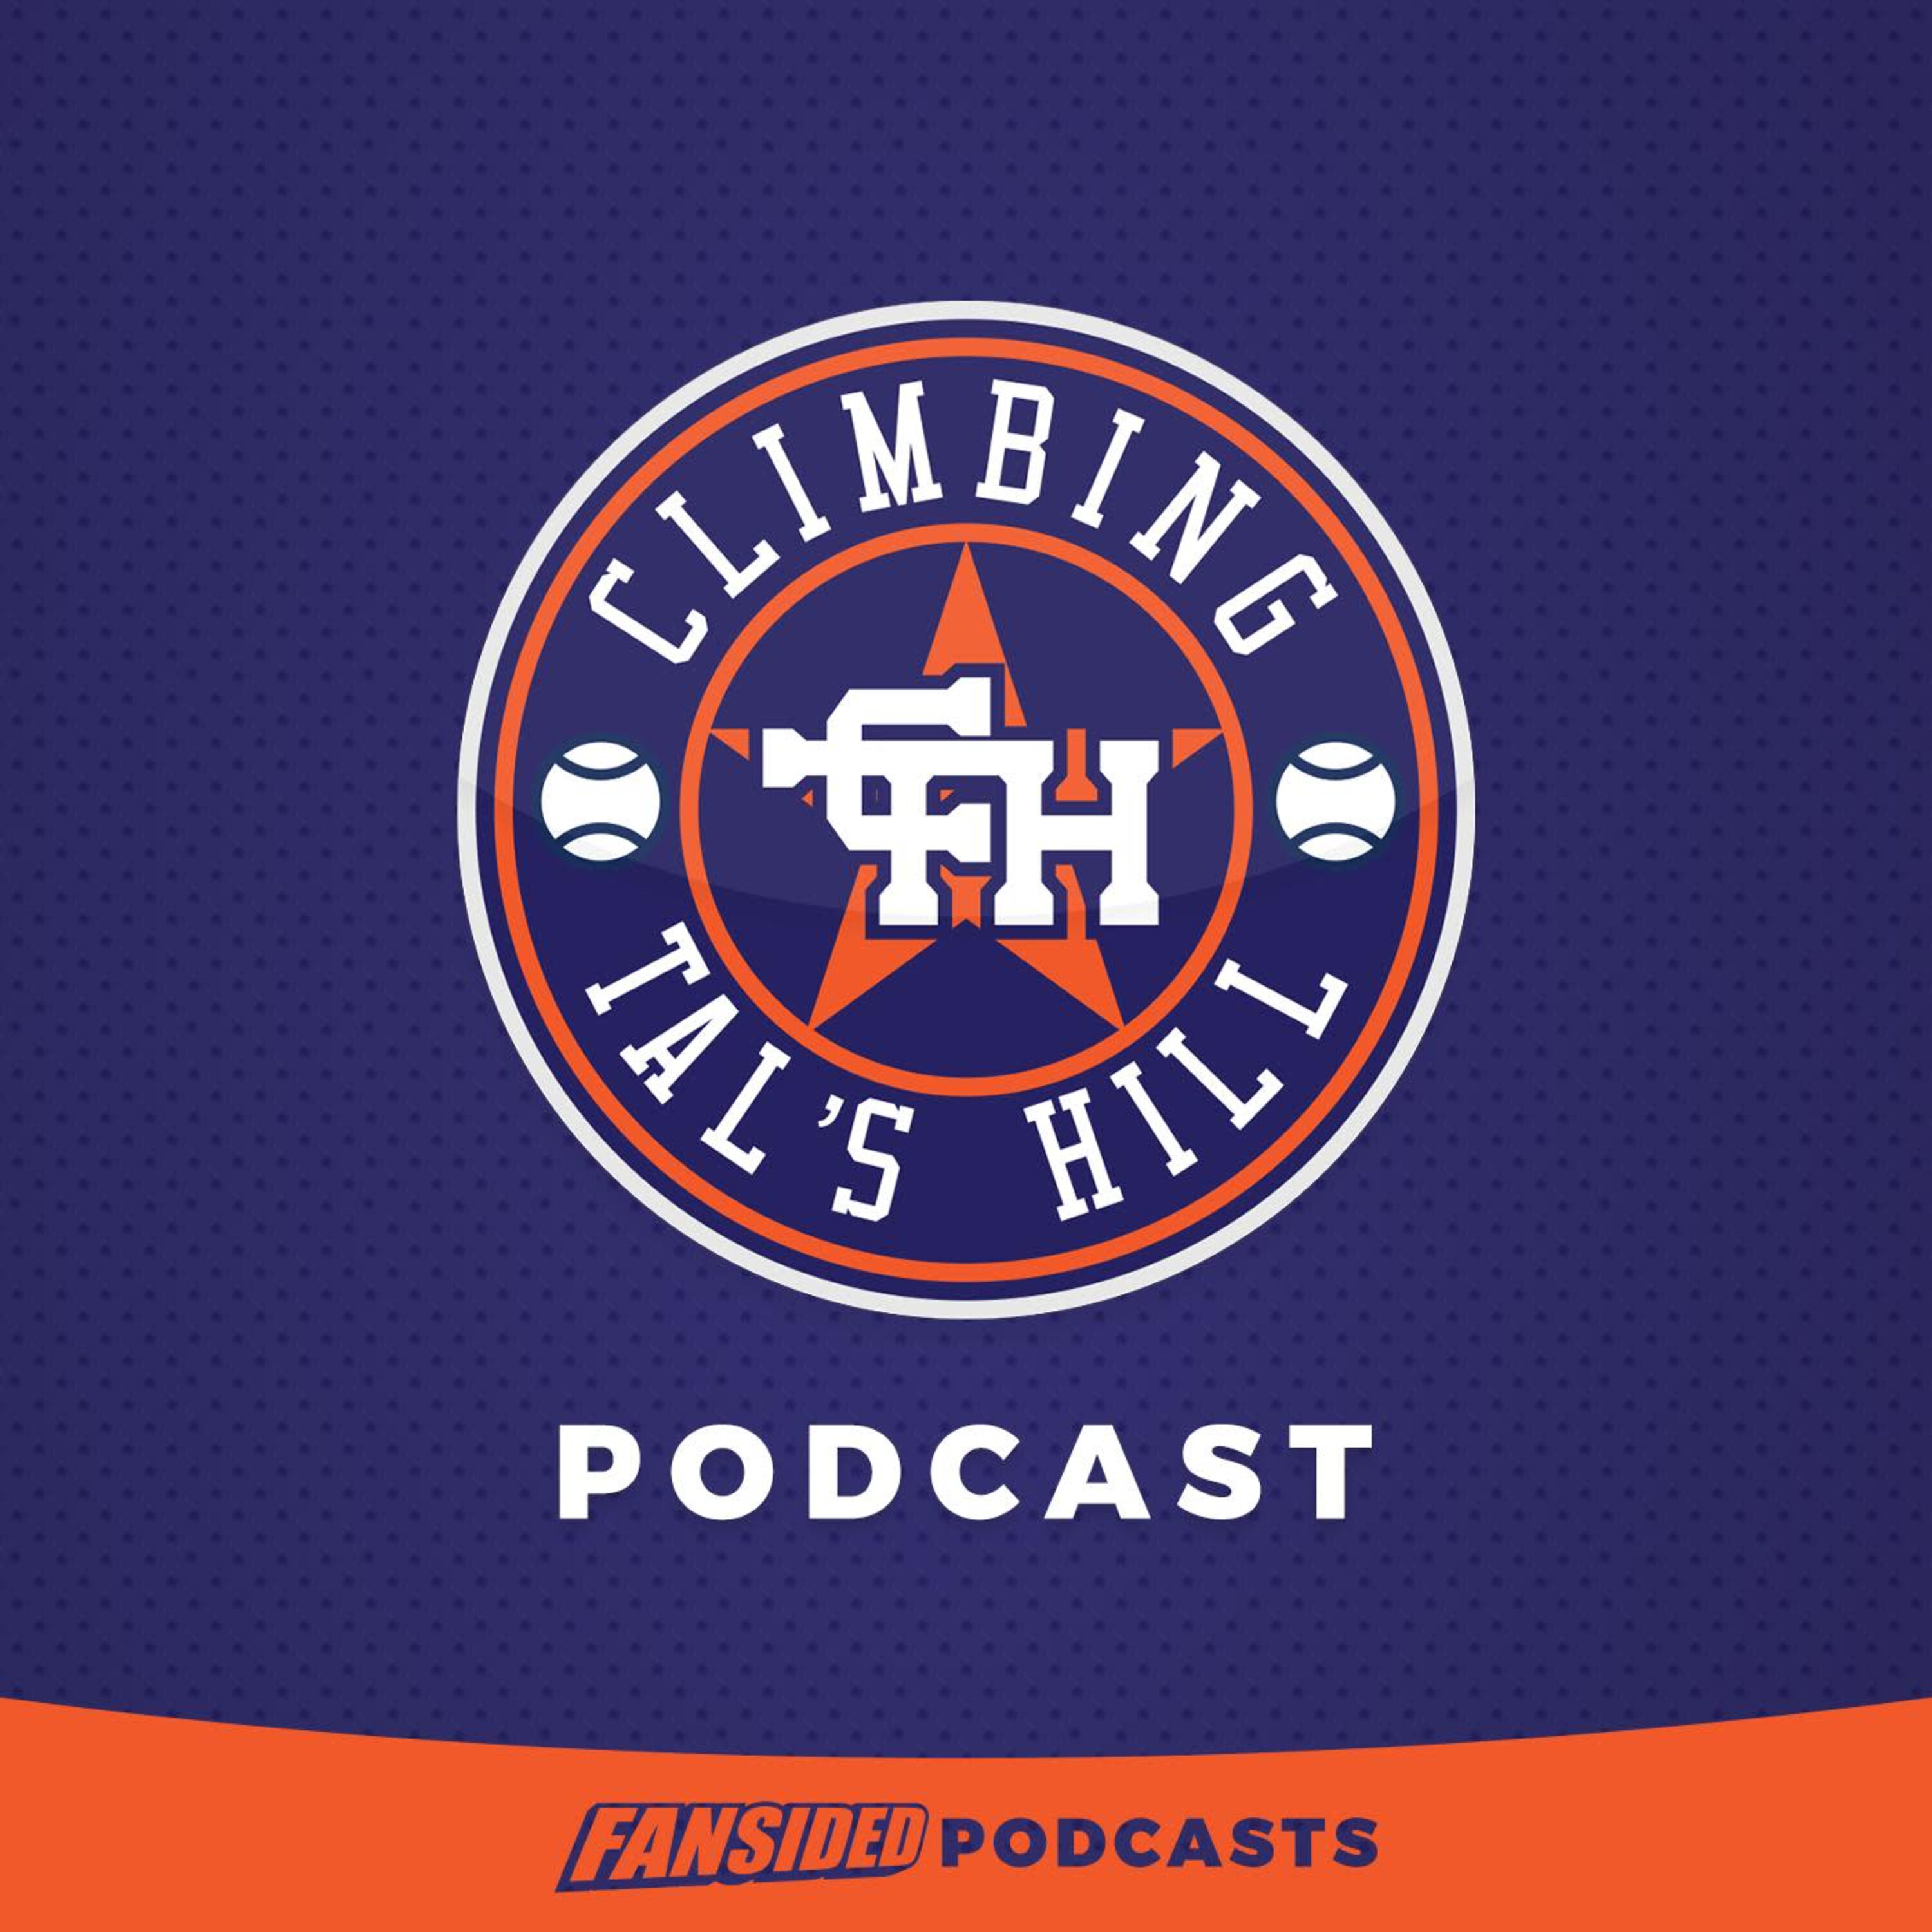 CTH Podcast: Yuli Gurriel is out 6 weeks, but the Astros have the depth to cover